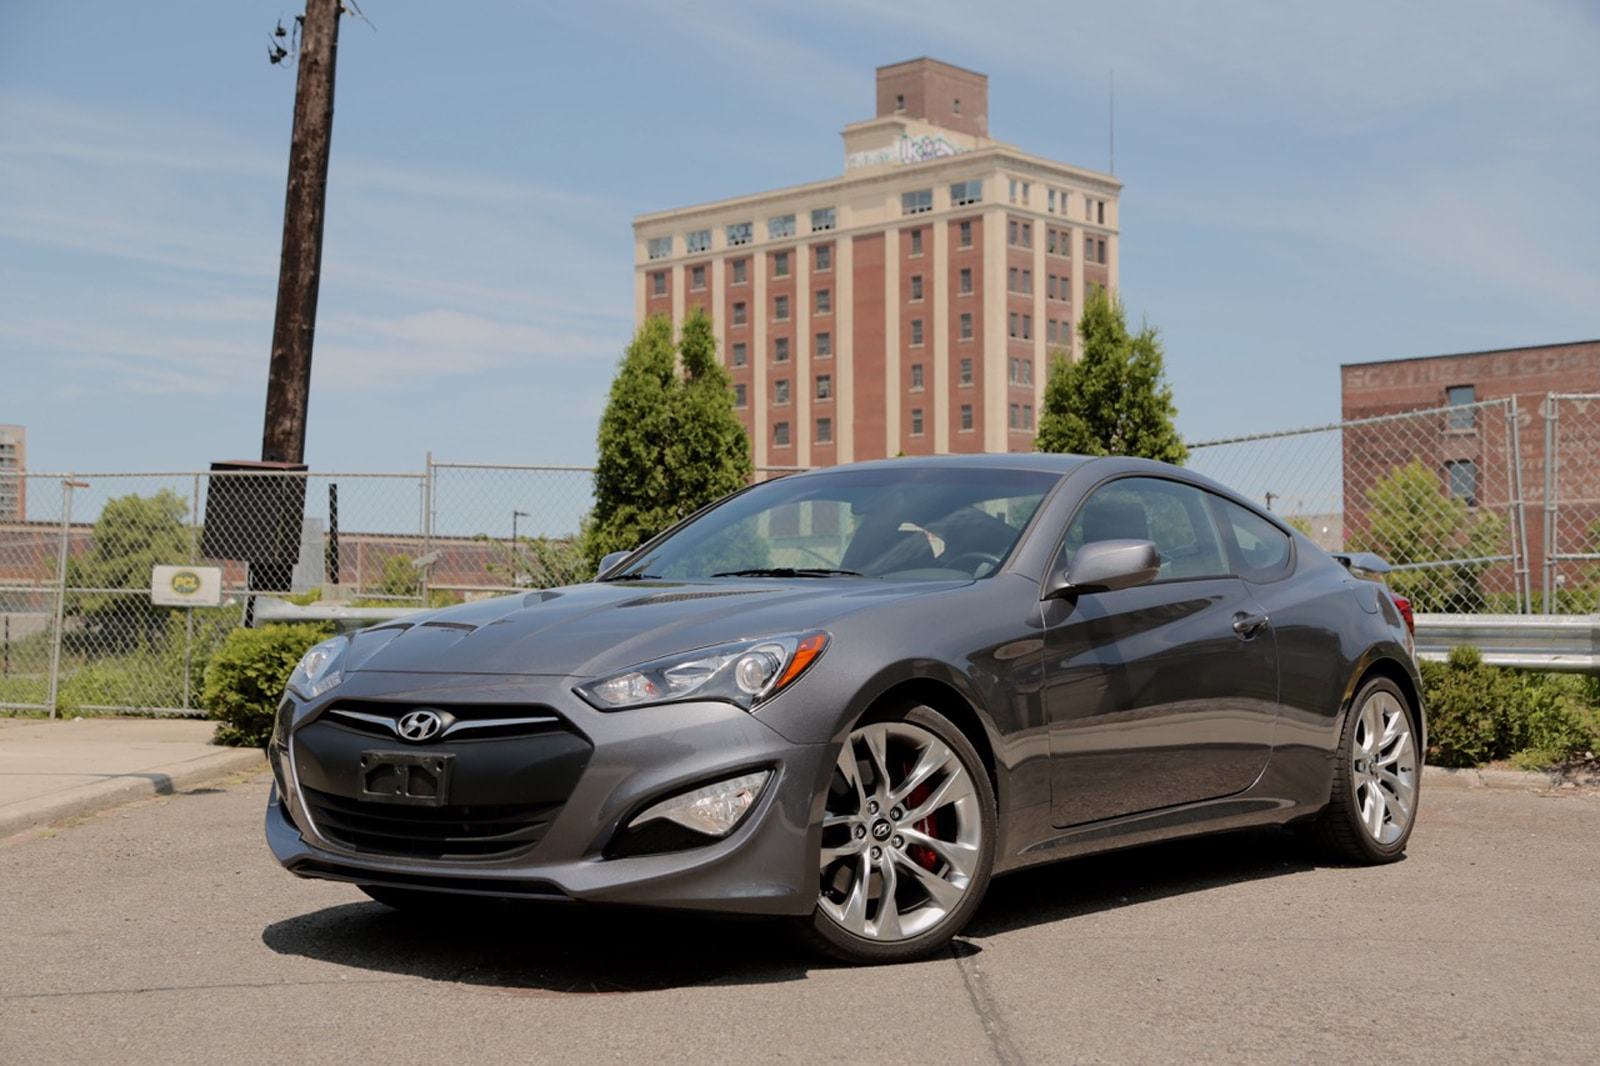 best sports cars under 30k 2016-Hyundai-Genesis-Coupe-3.8-R-Spec-1